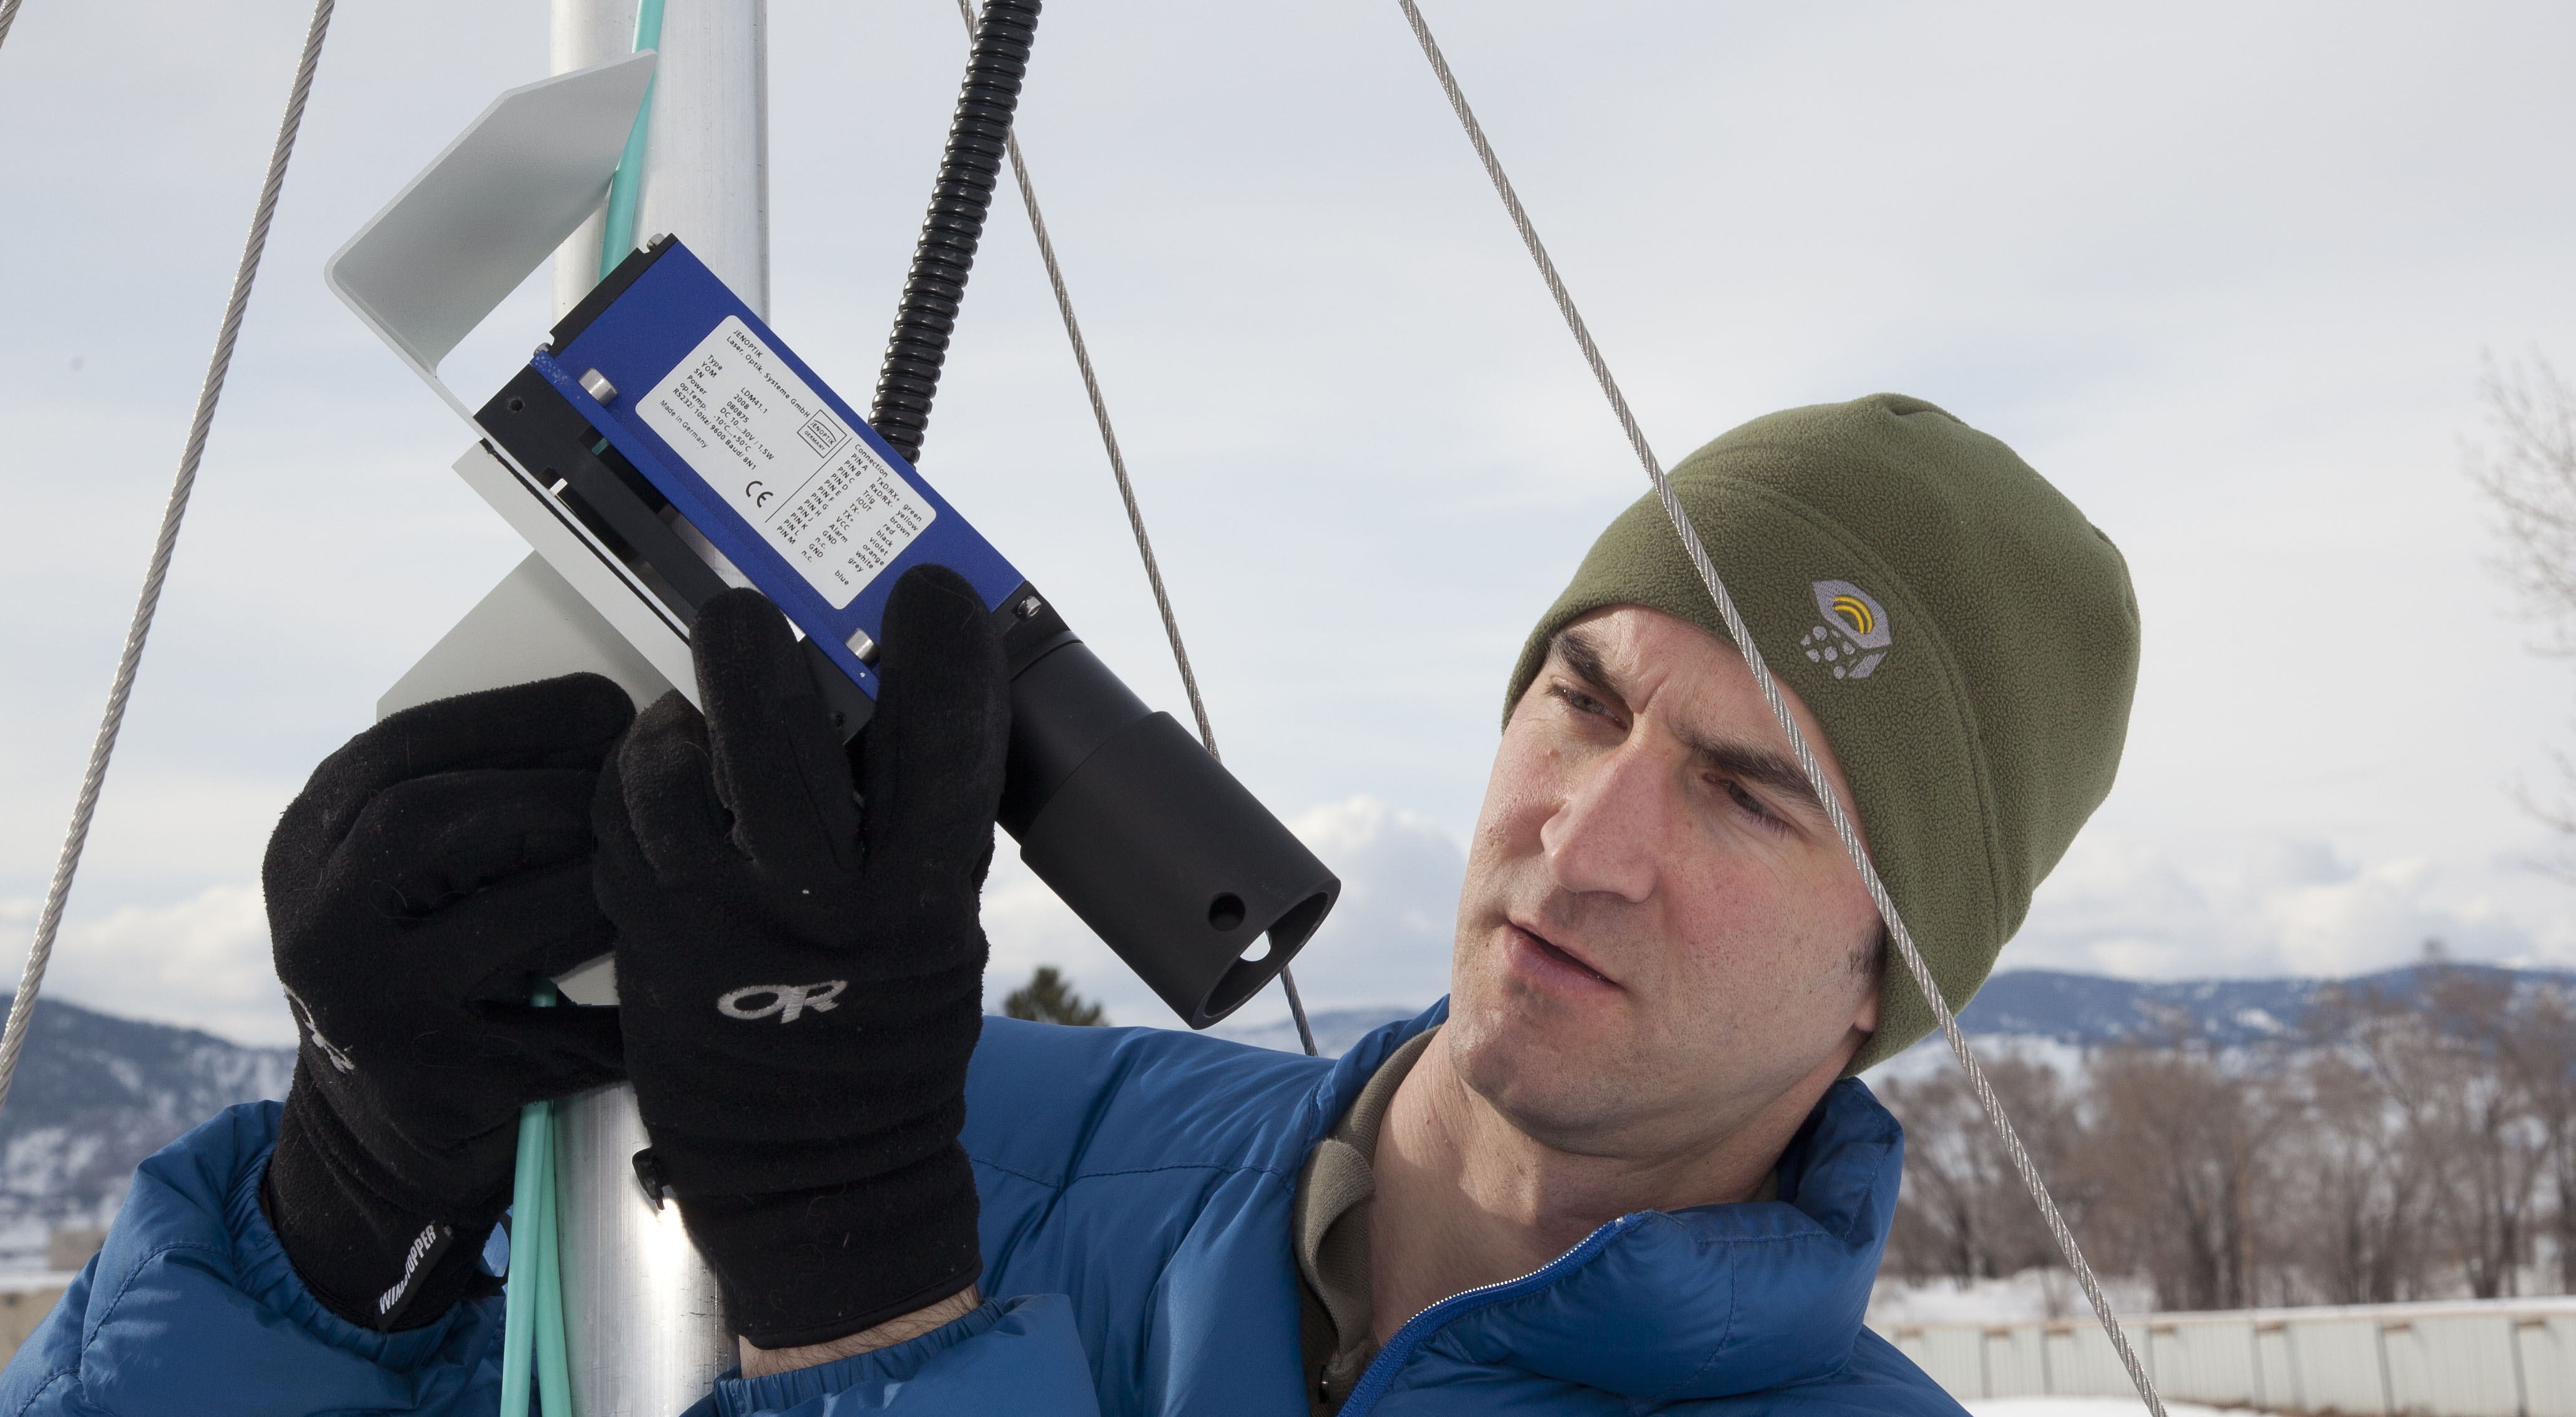 Scientist examines laser instrument for measuring snow